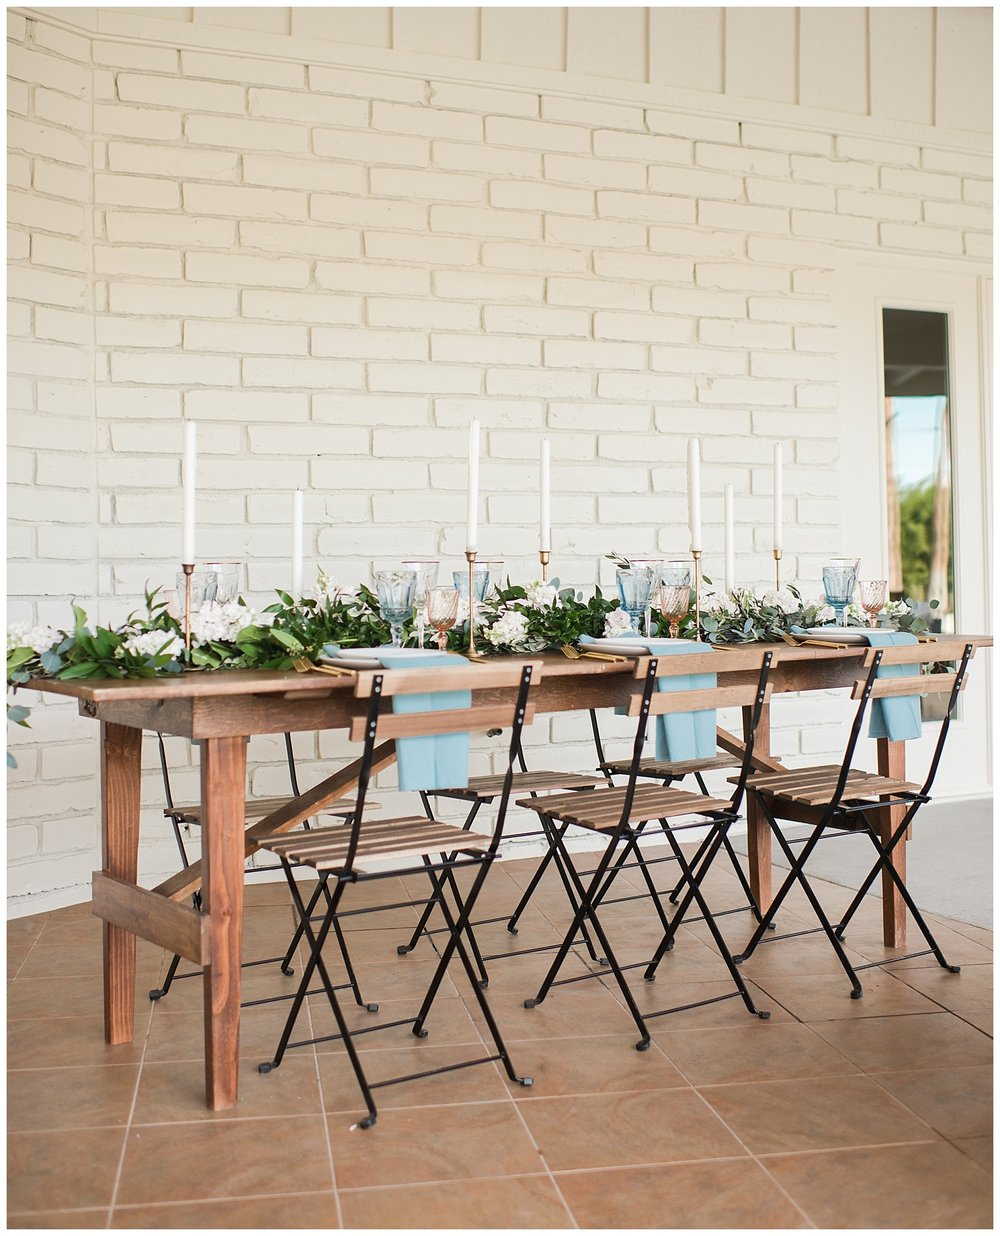 Reception table and rentals provided by Tremaine Ranch, decorated with florals and greenery by Golden Gate Flowers in Gilbert - photographed at Gather Estate in Mesa, Arizona.